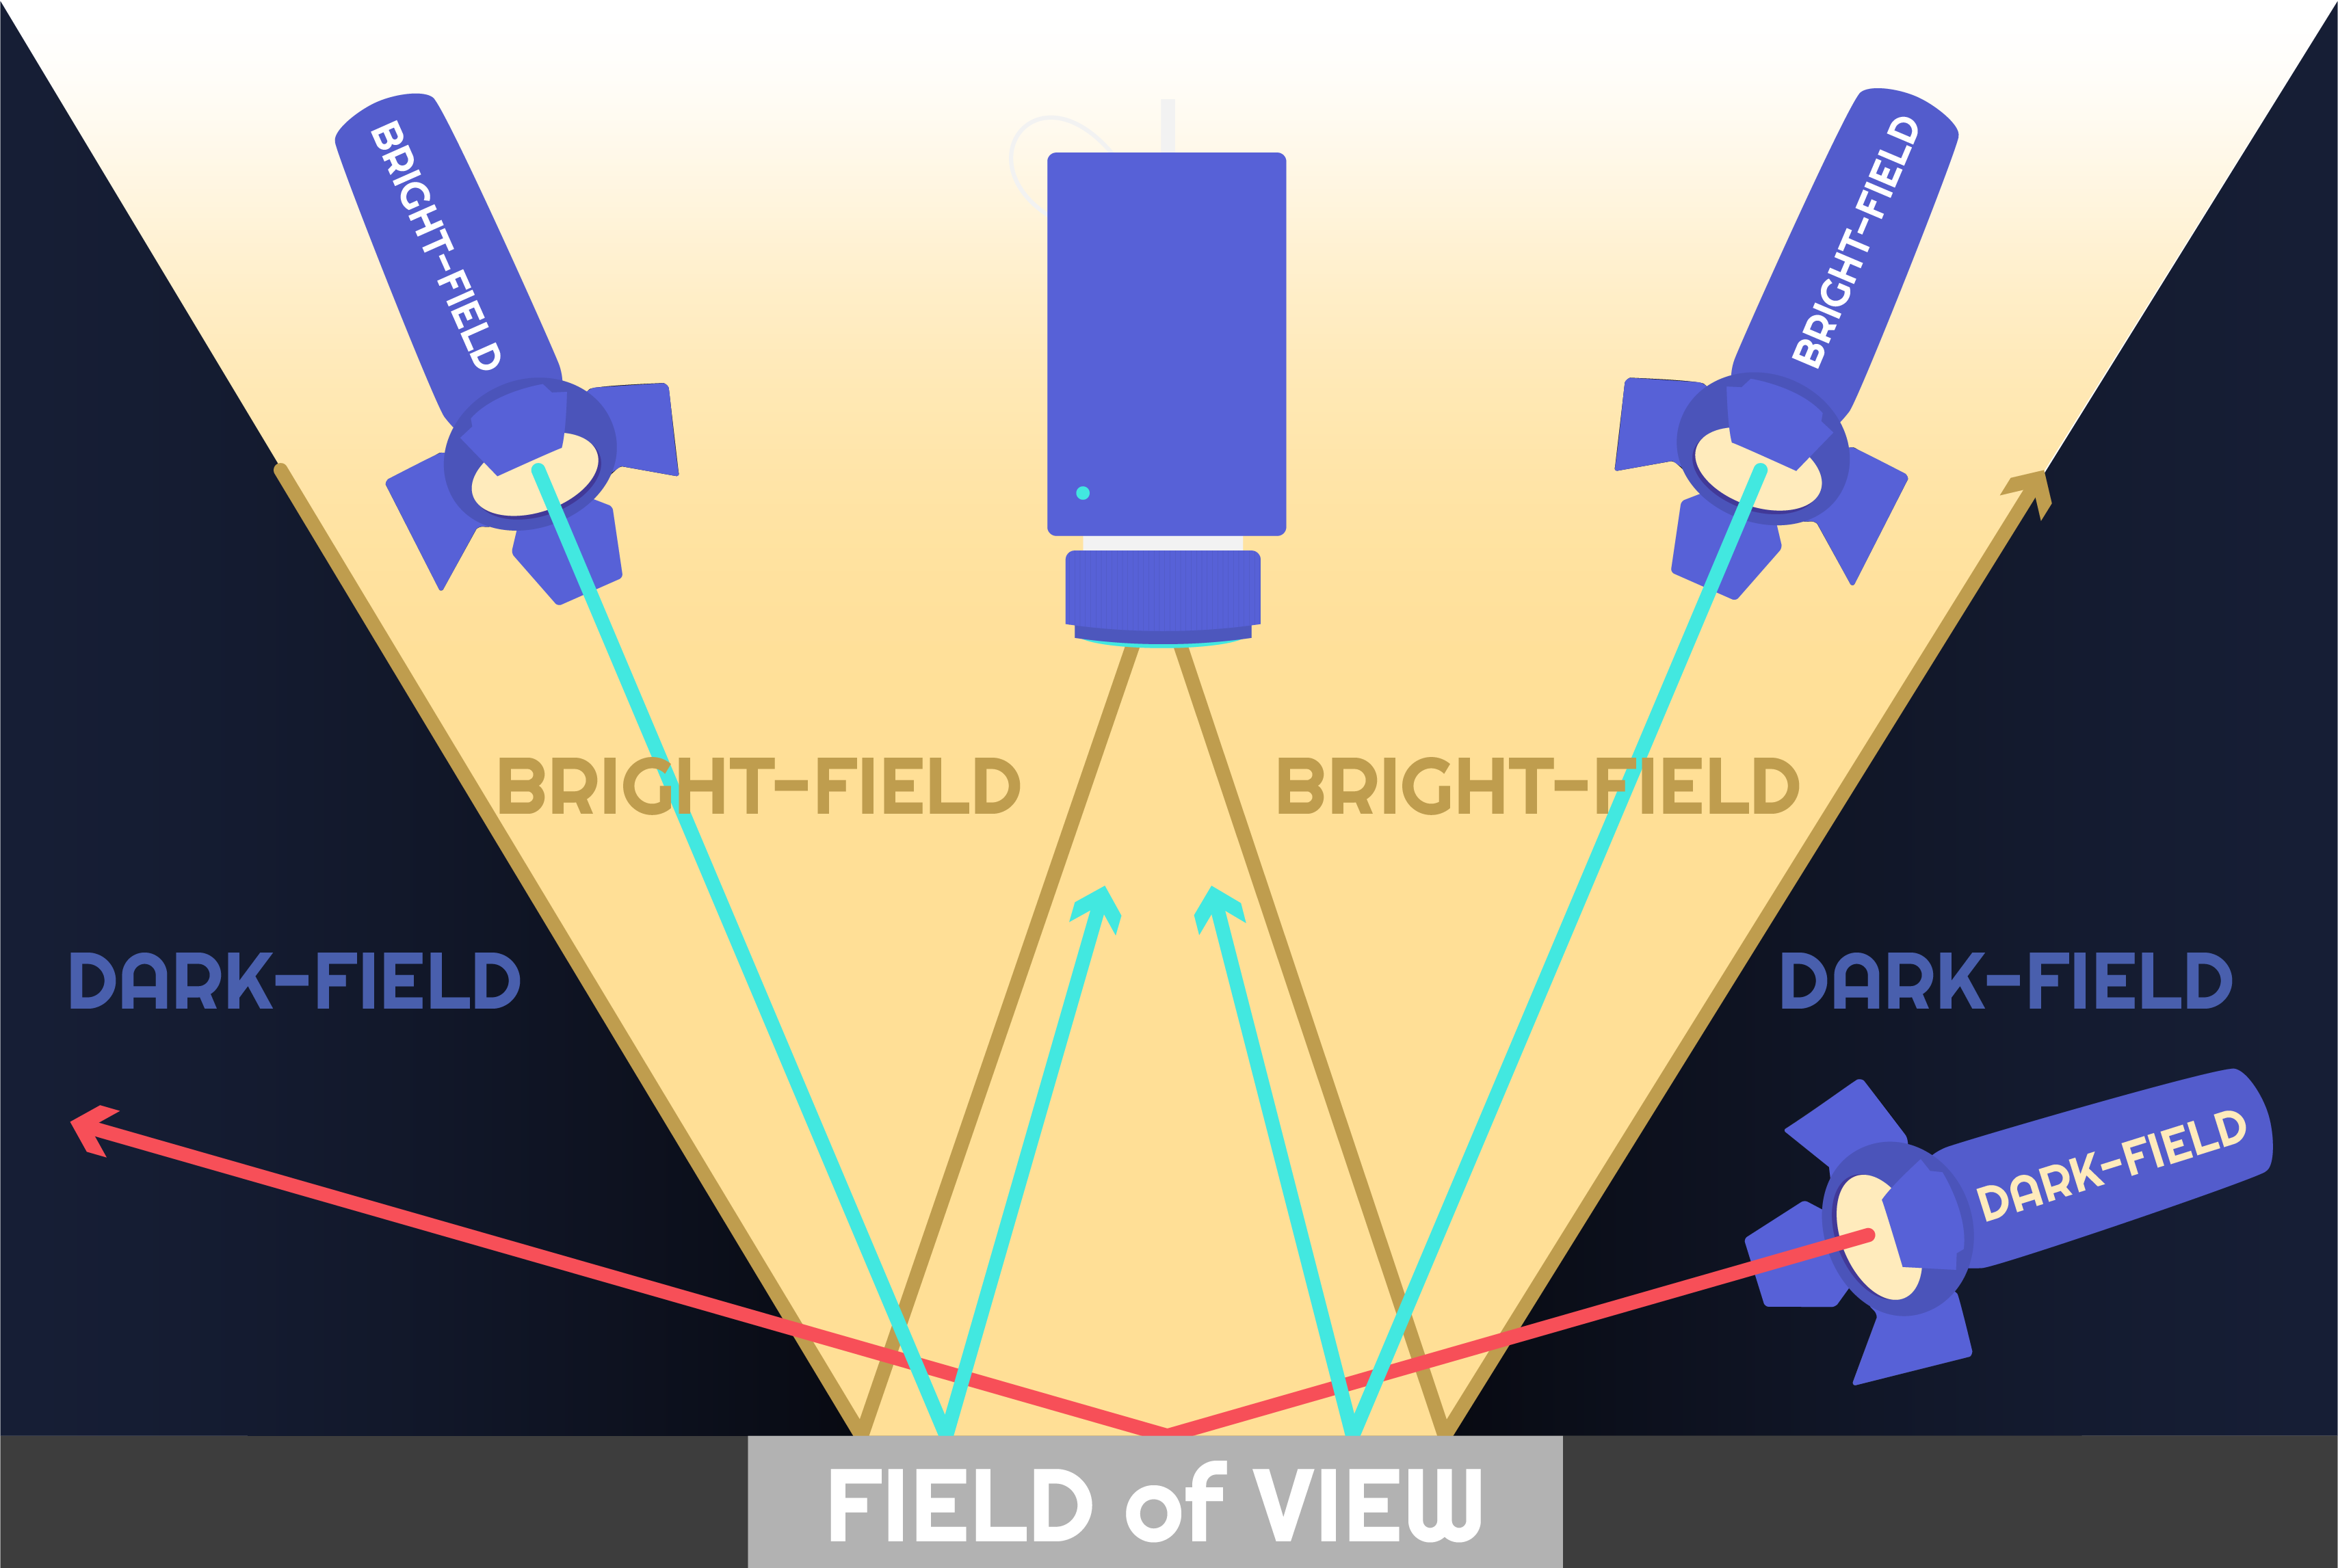 Illuminazione Brightfield e Darkfield